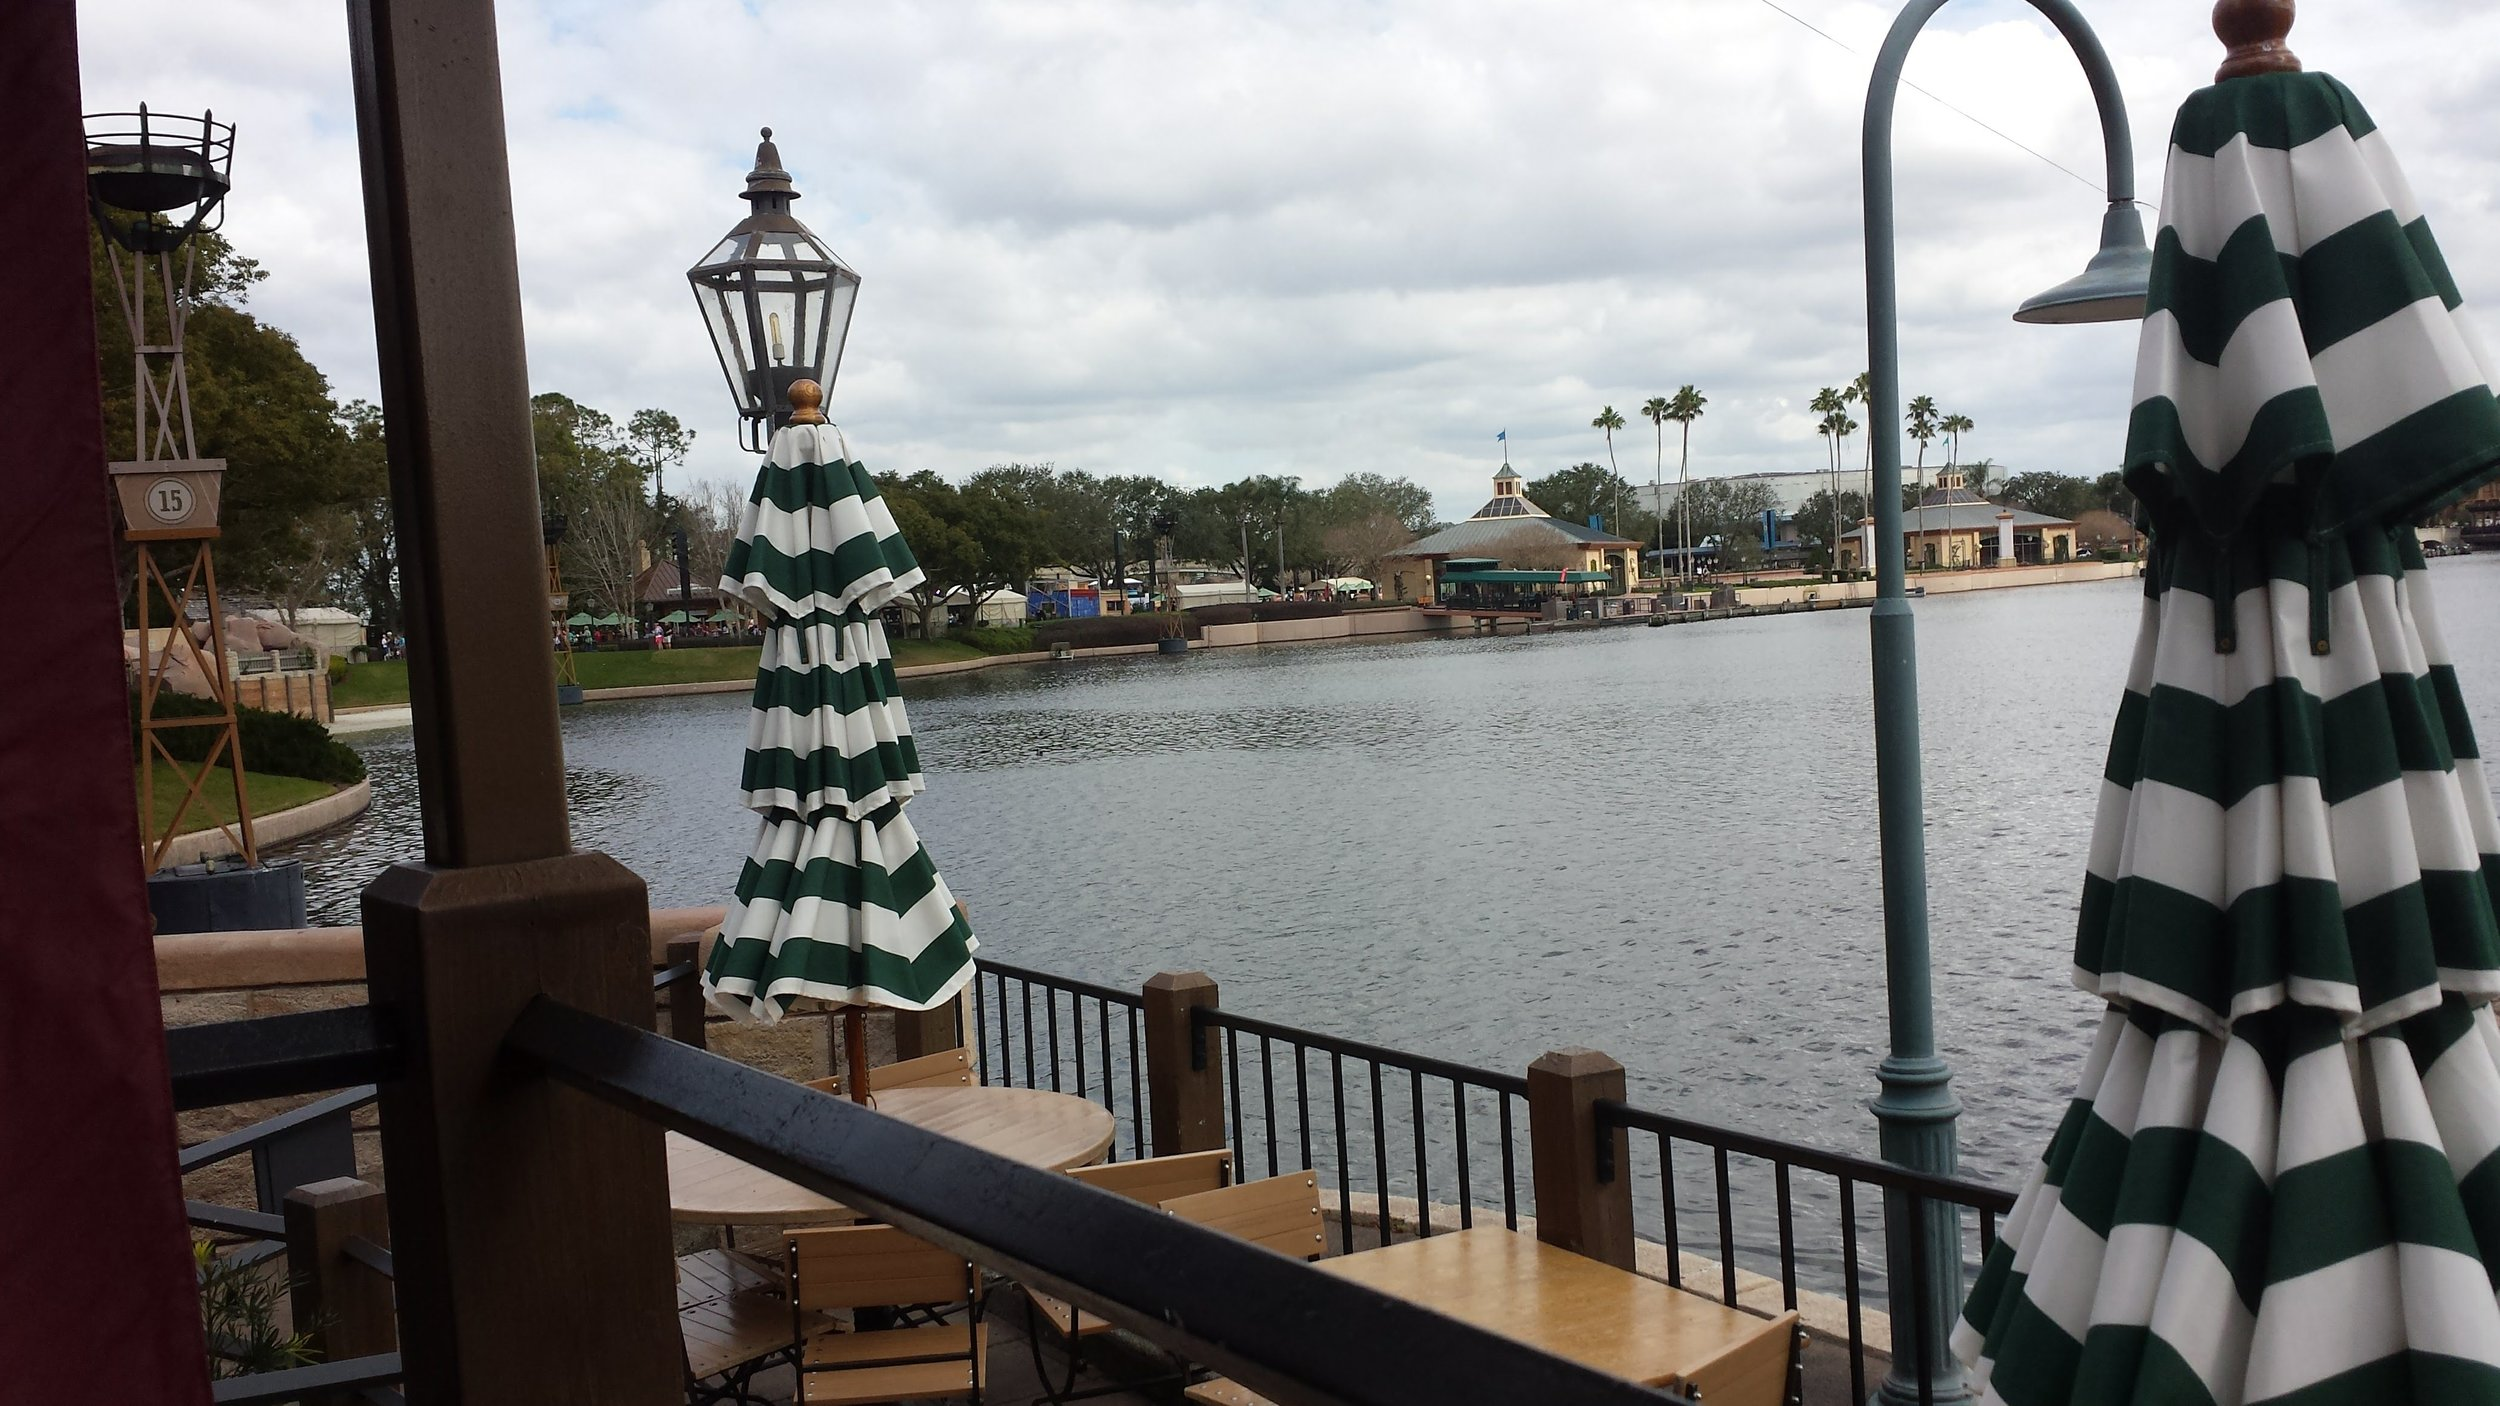 The view from outside the Rose & crown, a table service restaurant in epcot.